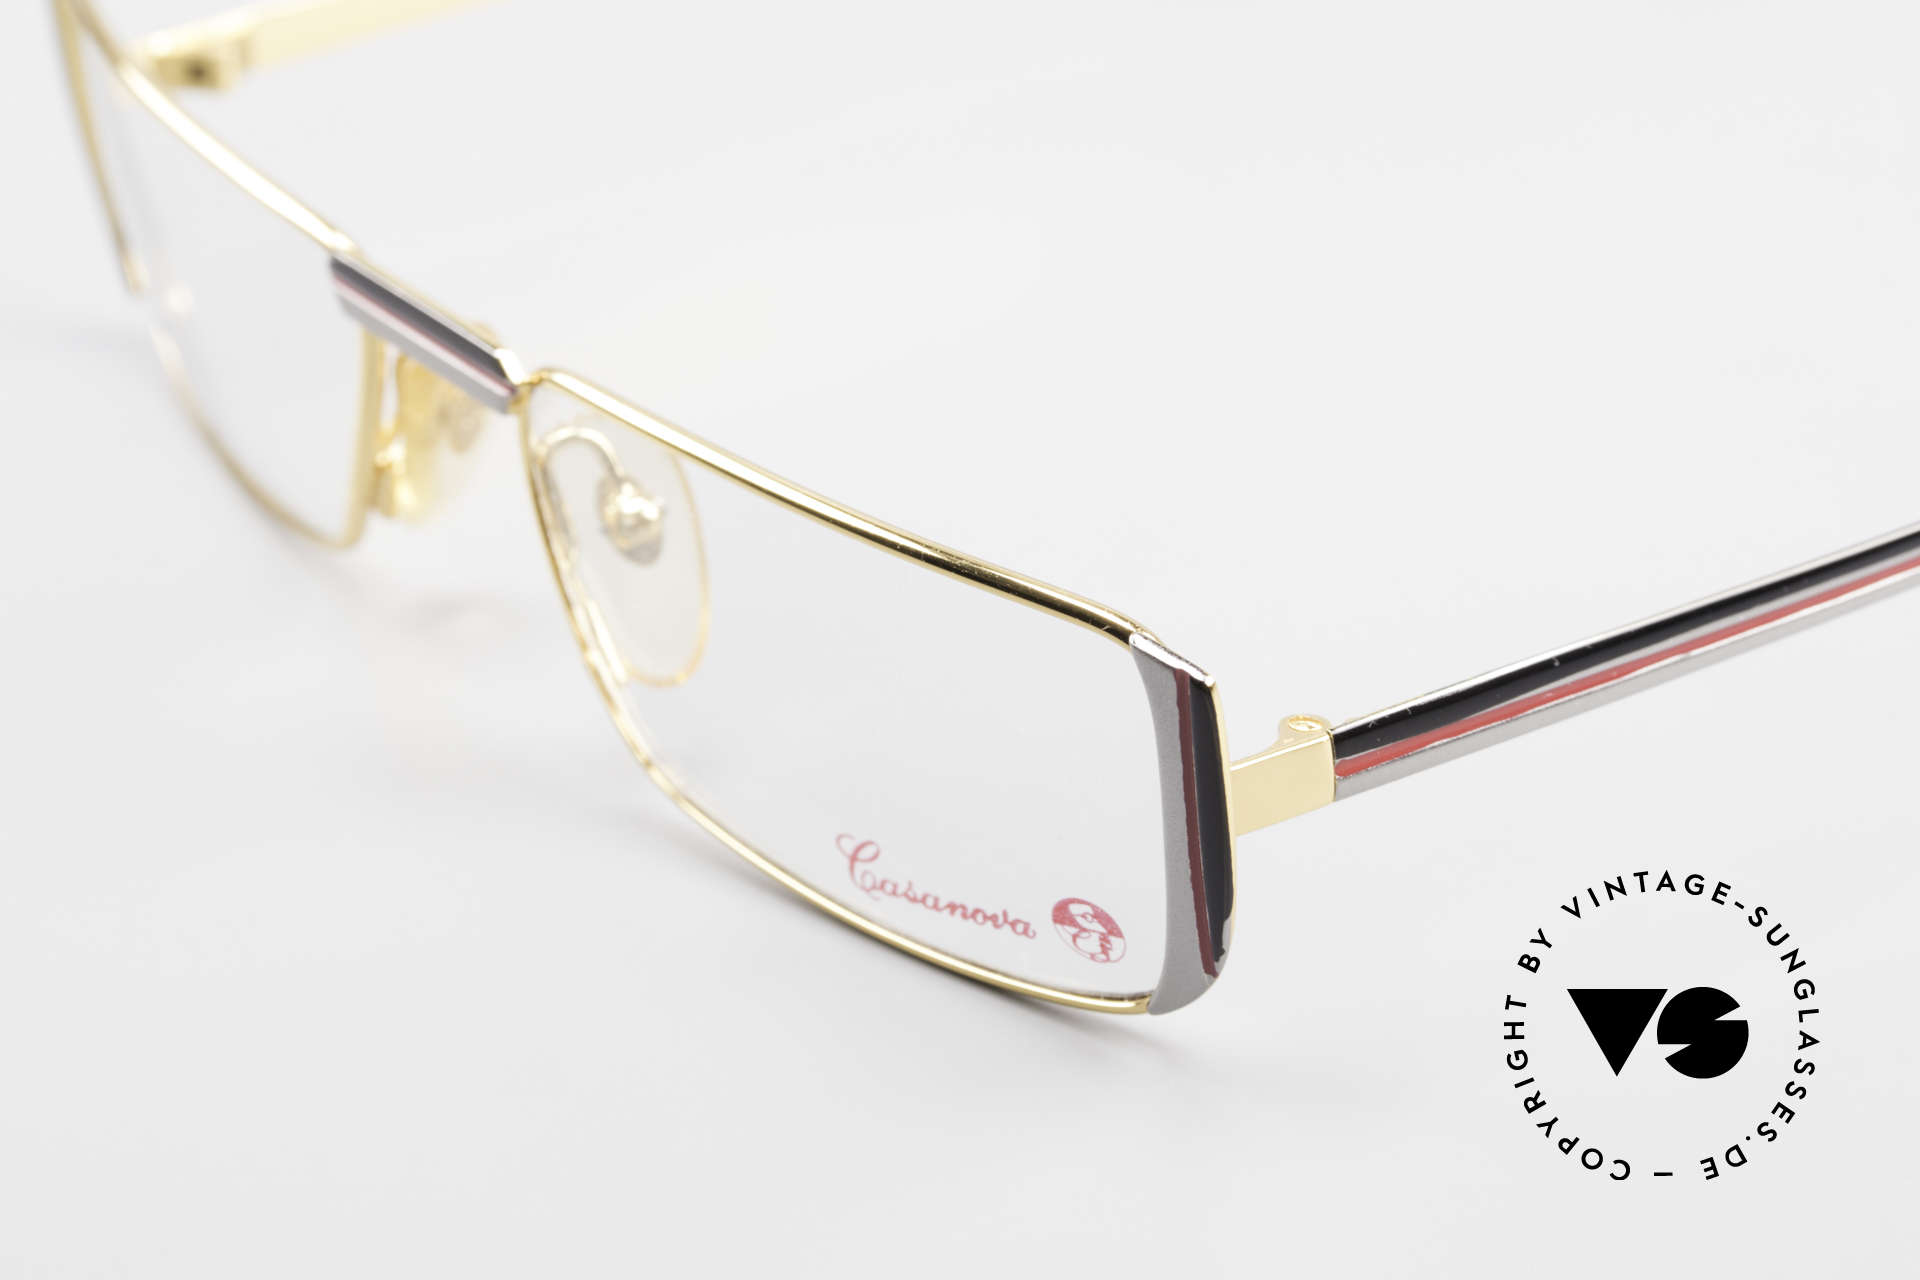 Casanova NM3 Square Reading Eyeglasses 80s, limited-lot 1980's production (rare, costly, precious), Made for Men and Women